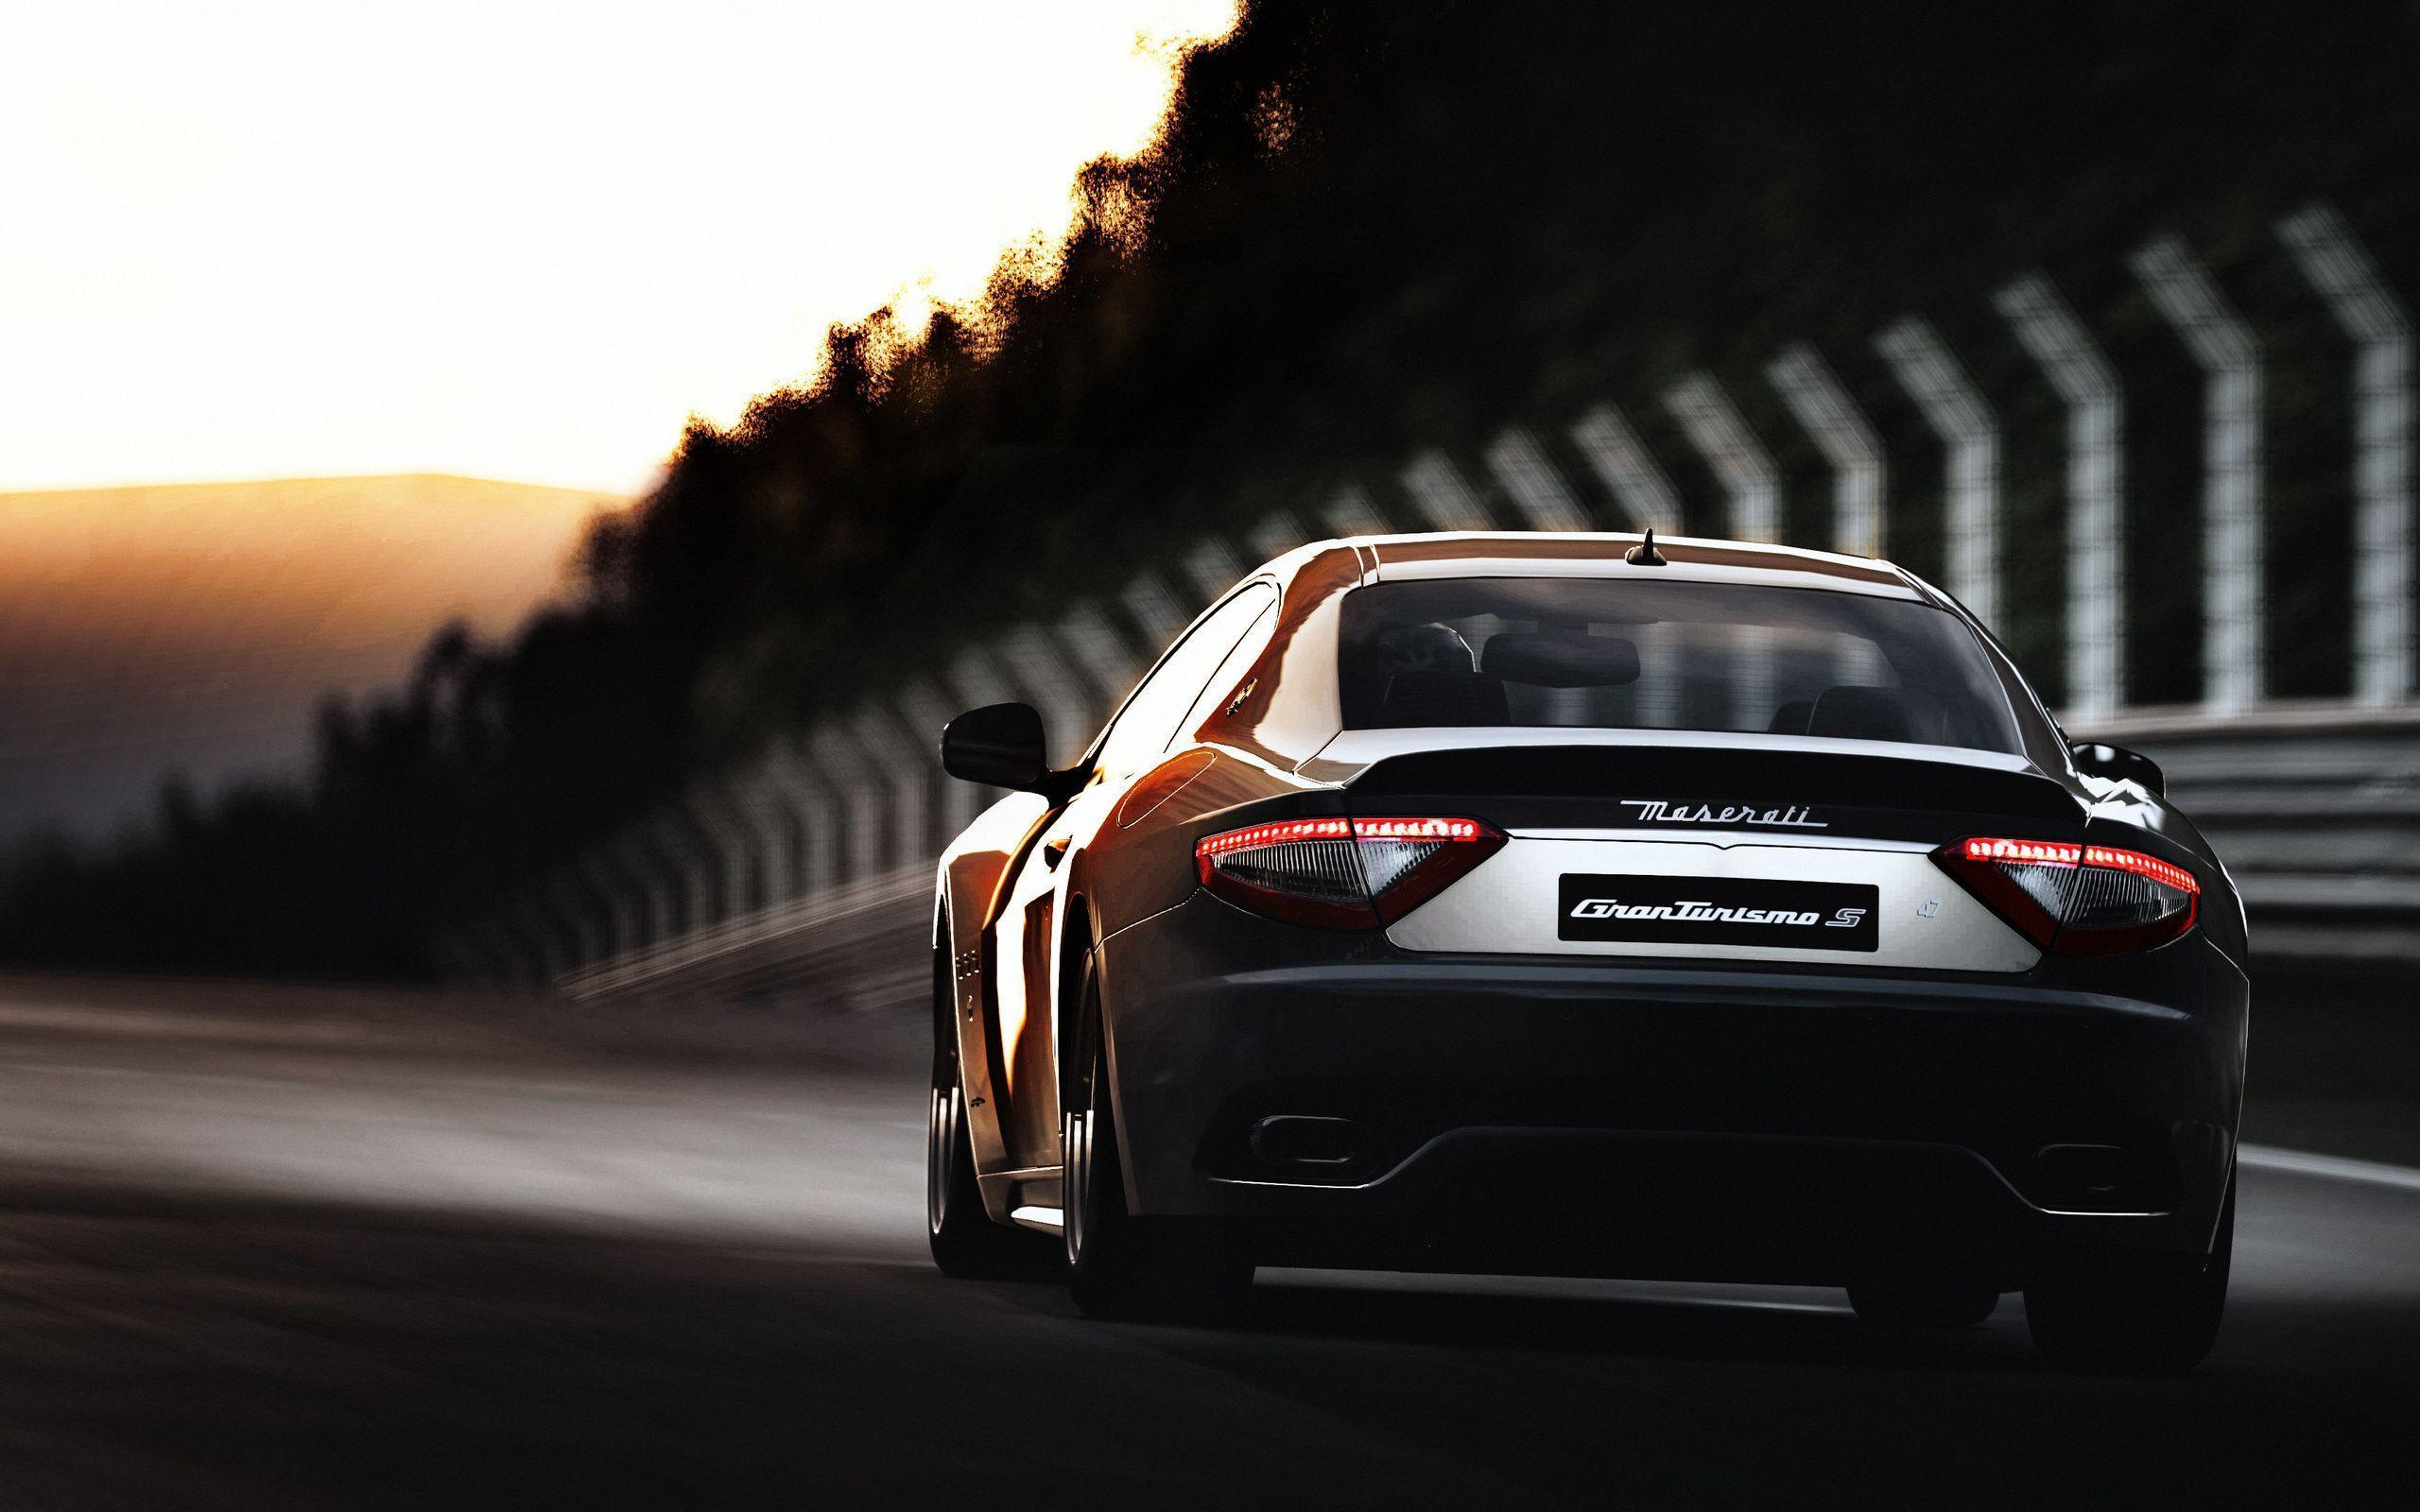 33 Maserati GranTurismo HD Wallpapers | Backgrounds - Wallpaper Abyss